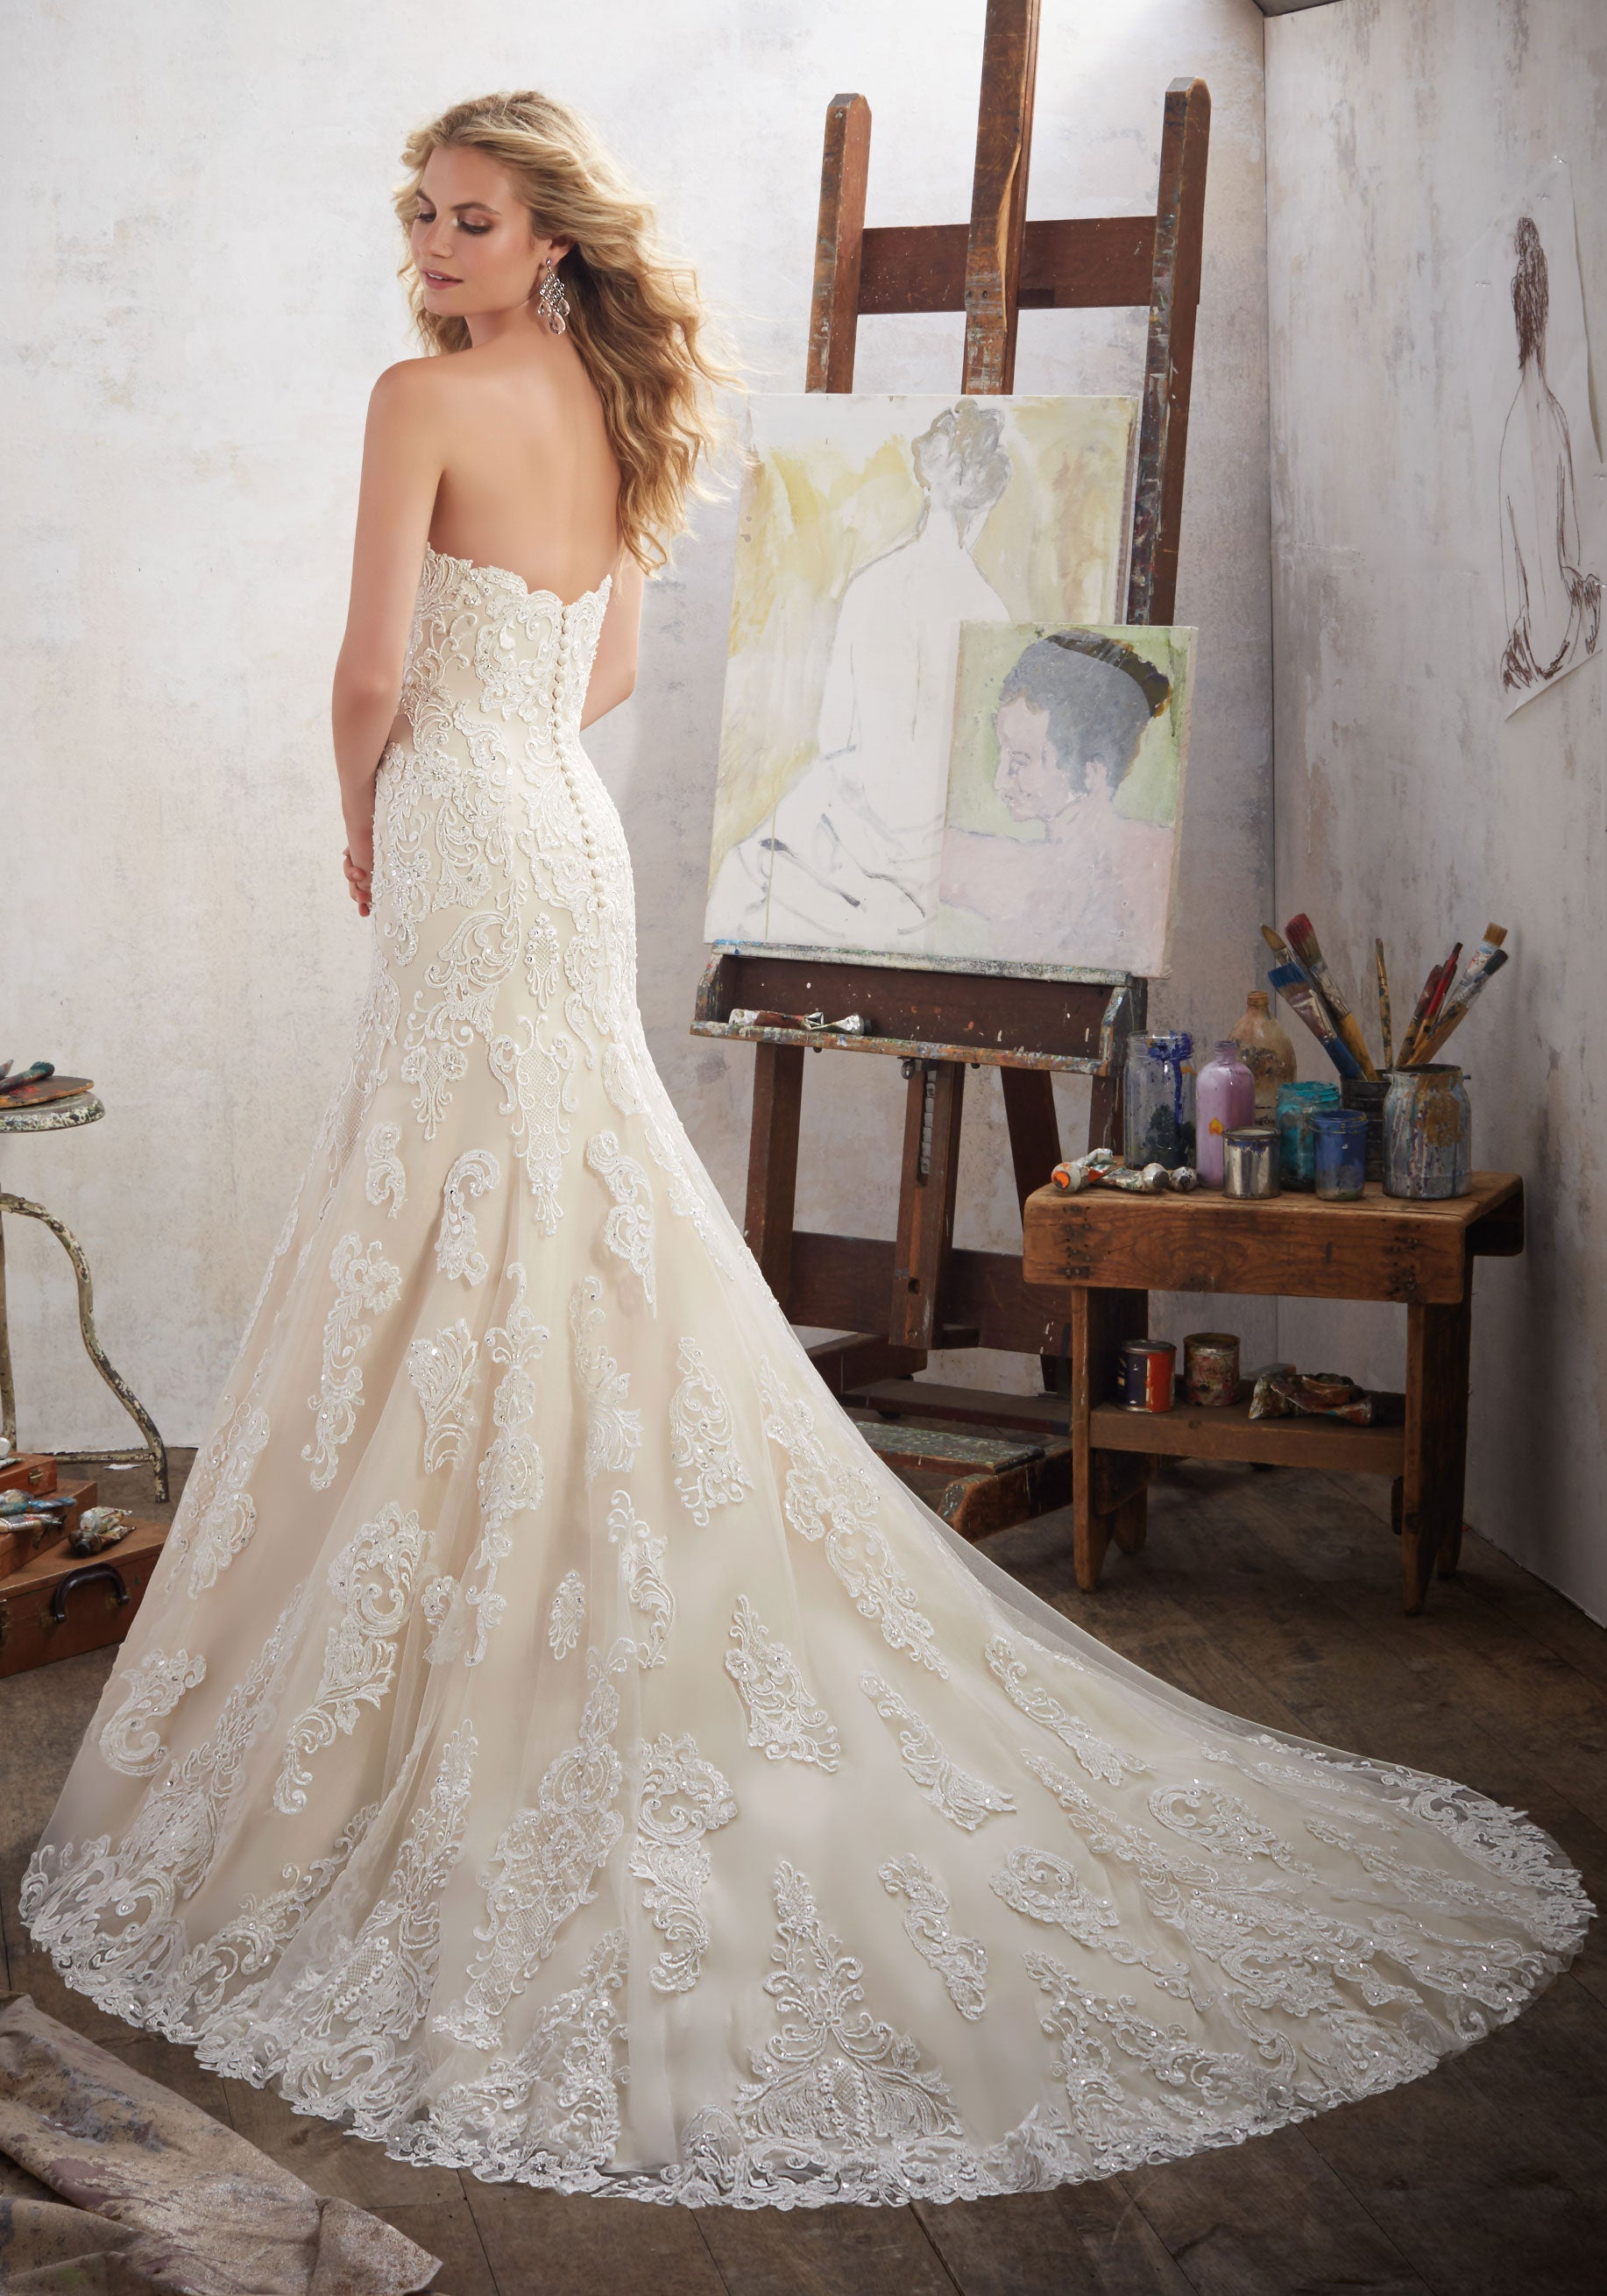 LNZO - Mori Lee Bridal